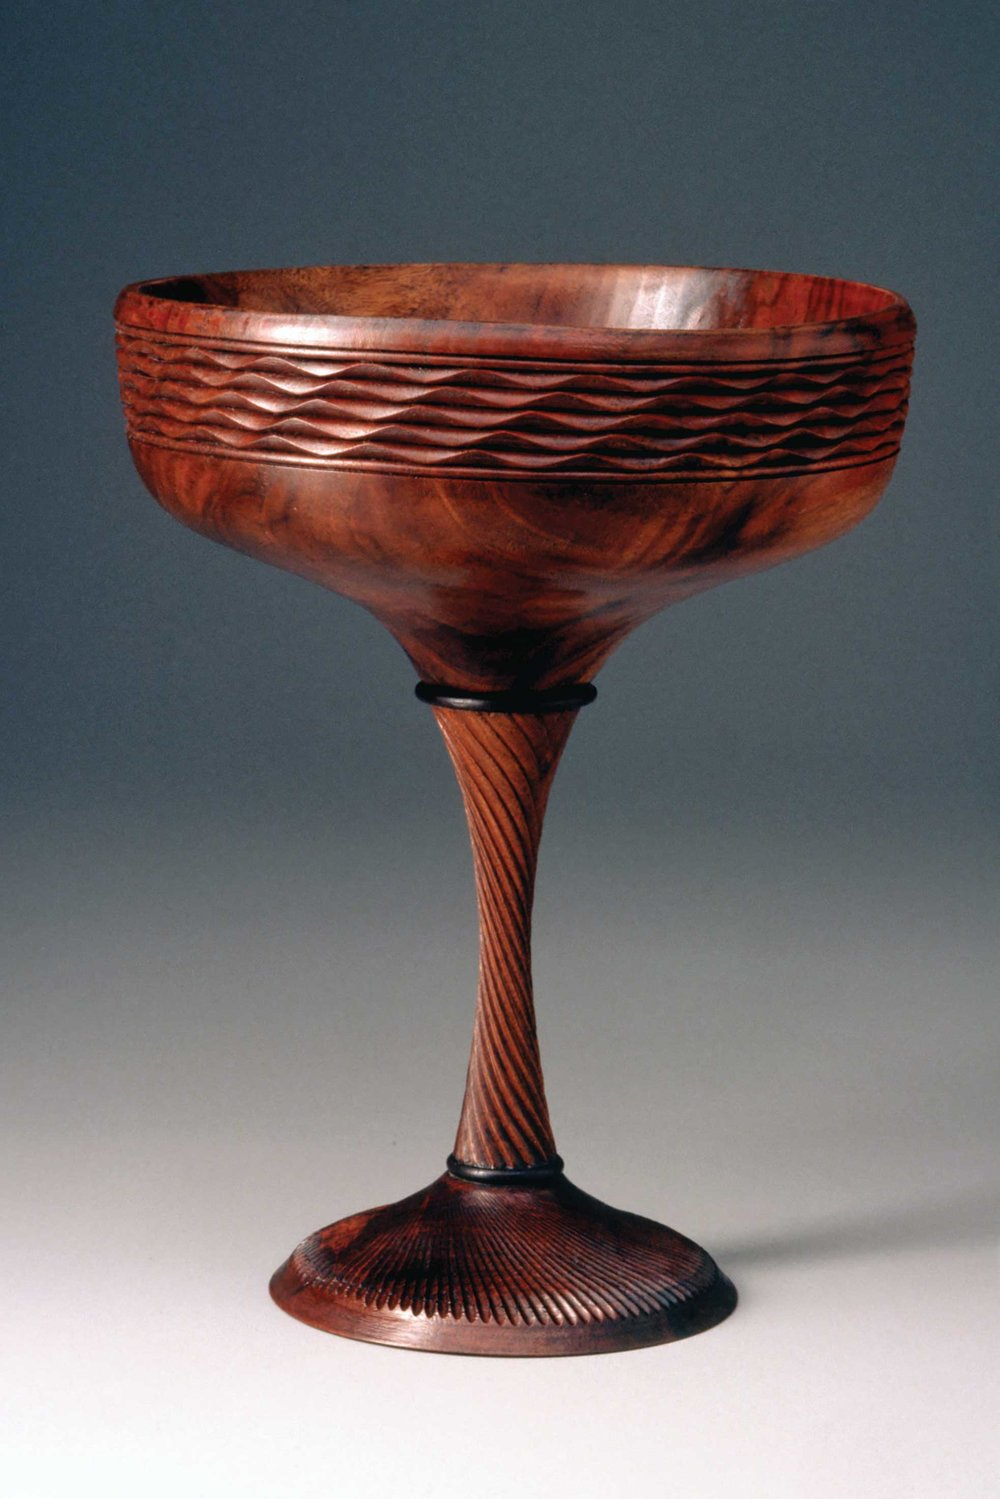 Fig. 1.  Frank Knox, United States.  Compote , 1976. Bowl and stem: California claro walnut; rings: ebony; base: unidentified wood. 9 1/2 x 7 in. dia. Donated by Albert and Tina LeCoff. The Center for Art in Wood's Museum Collection. OBJ 1137. Photo: John Carlano